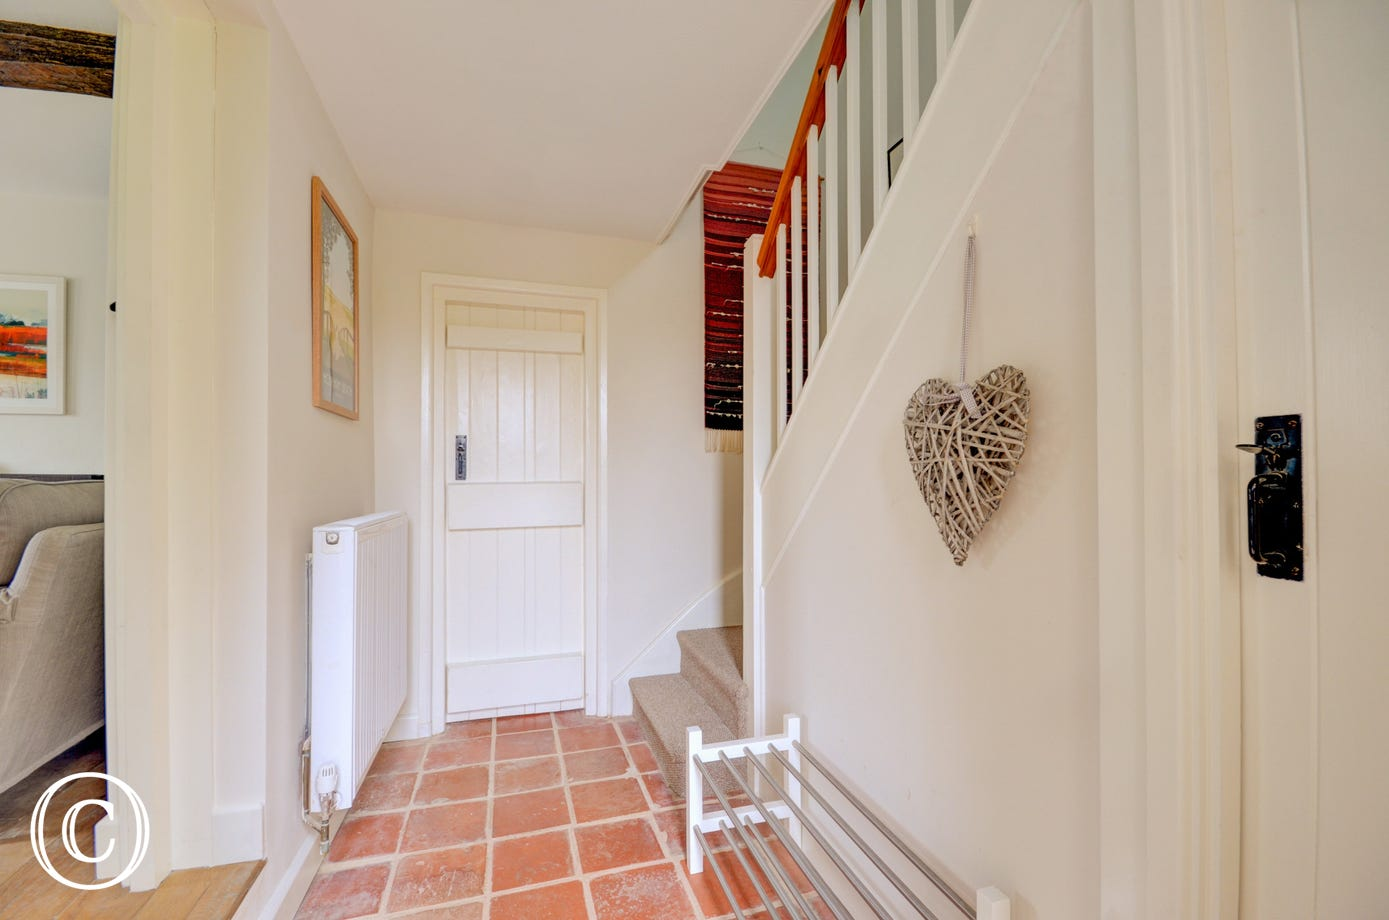 Hallway with tiled floor and stairs